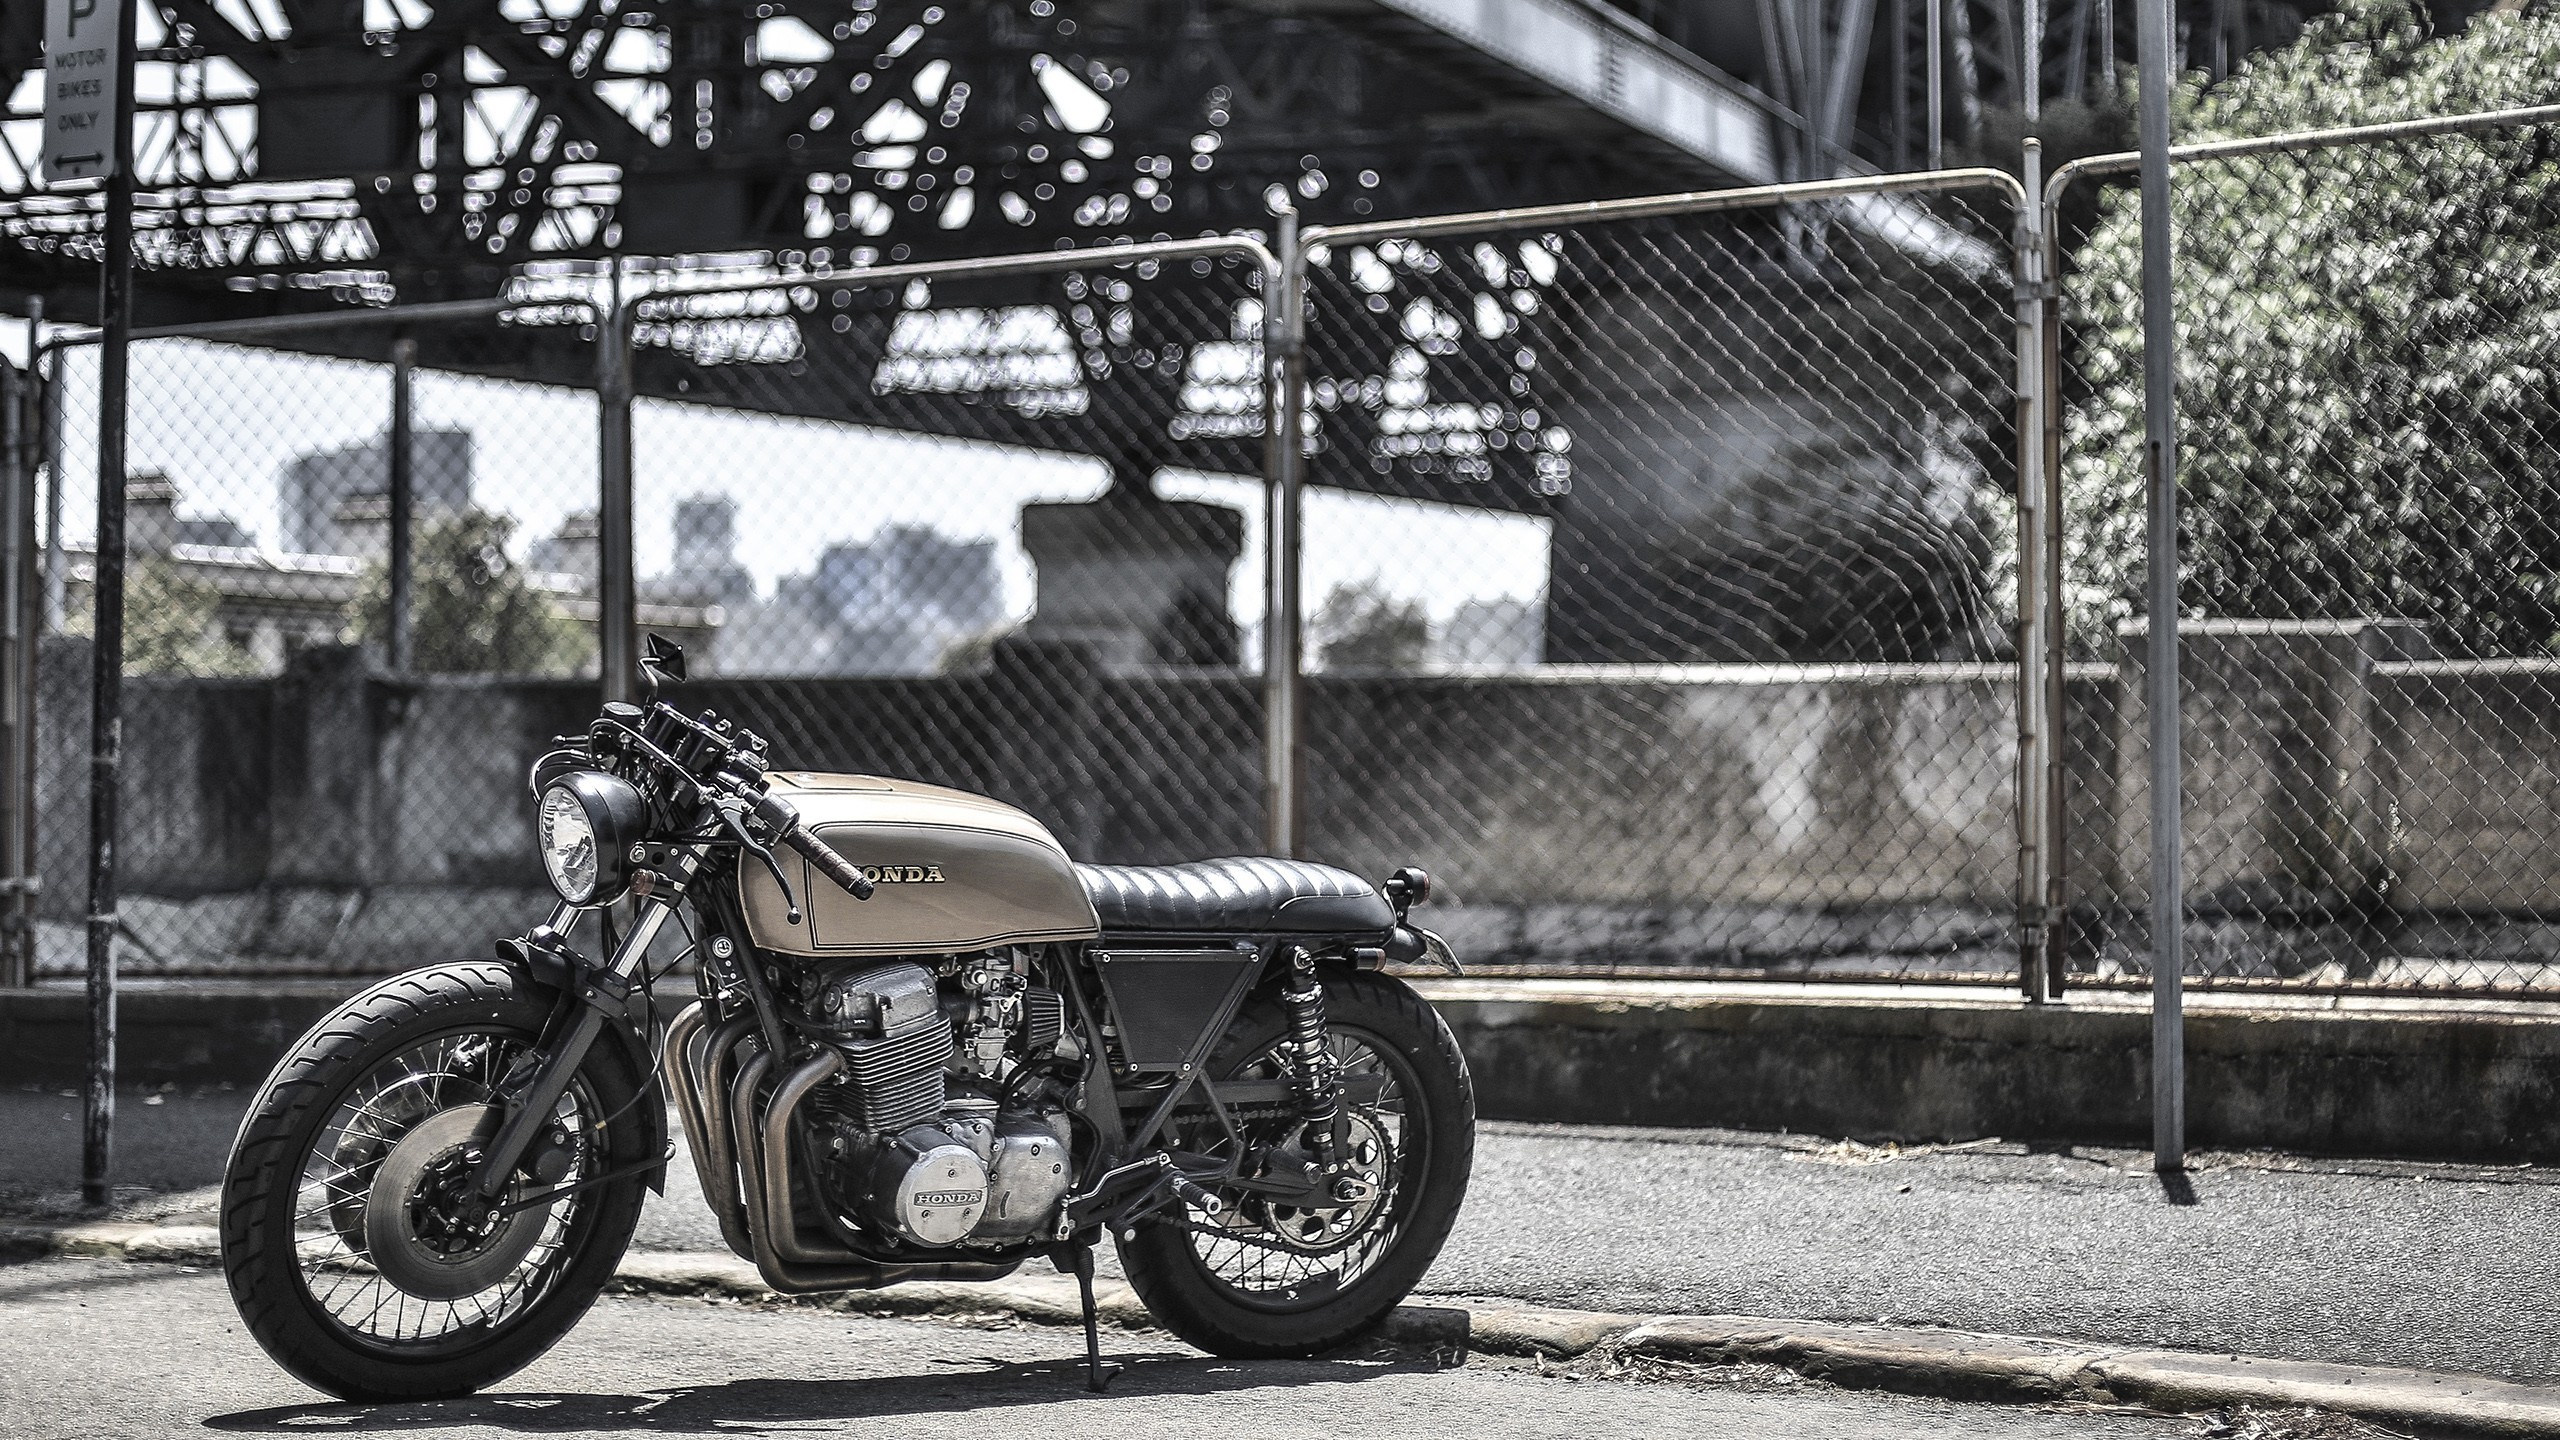 Res: 2560x1440, honda motorcycle fence bridge bobber wallpaper and background